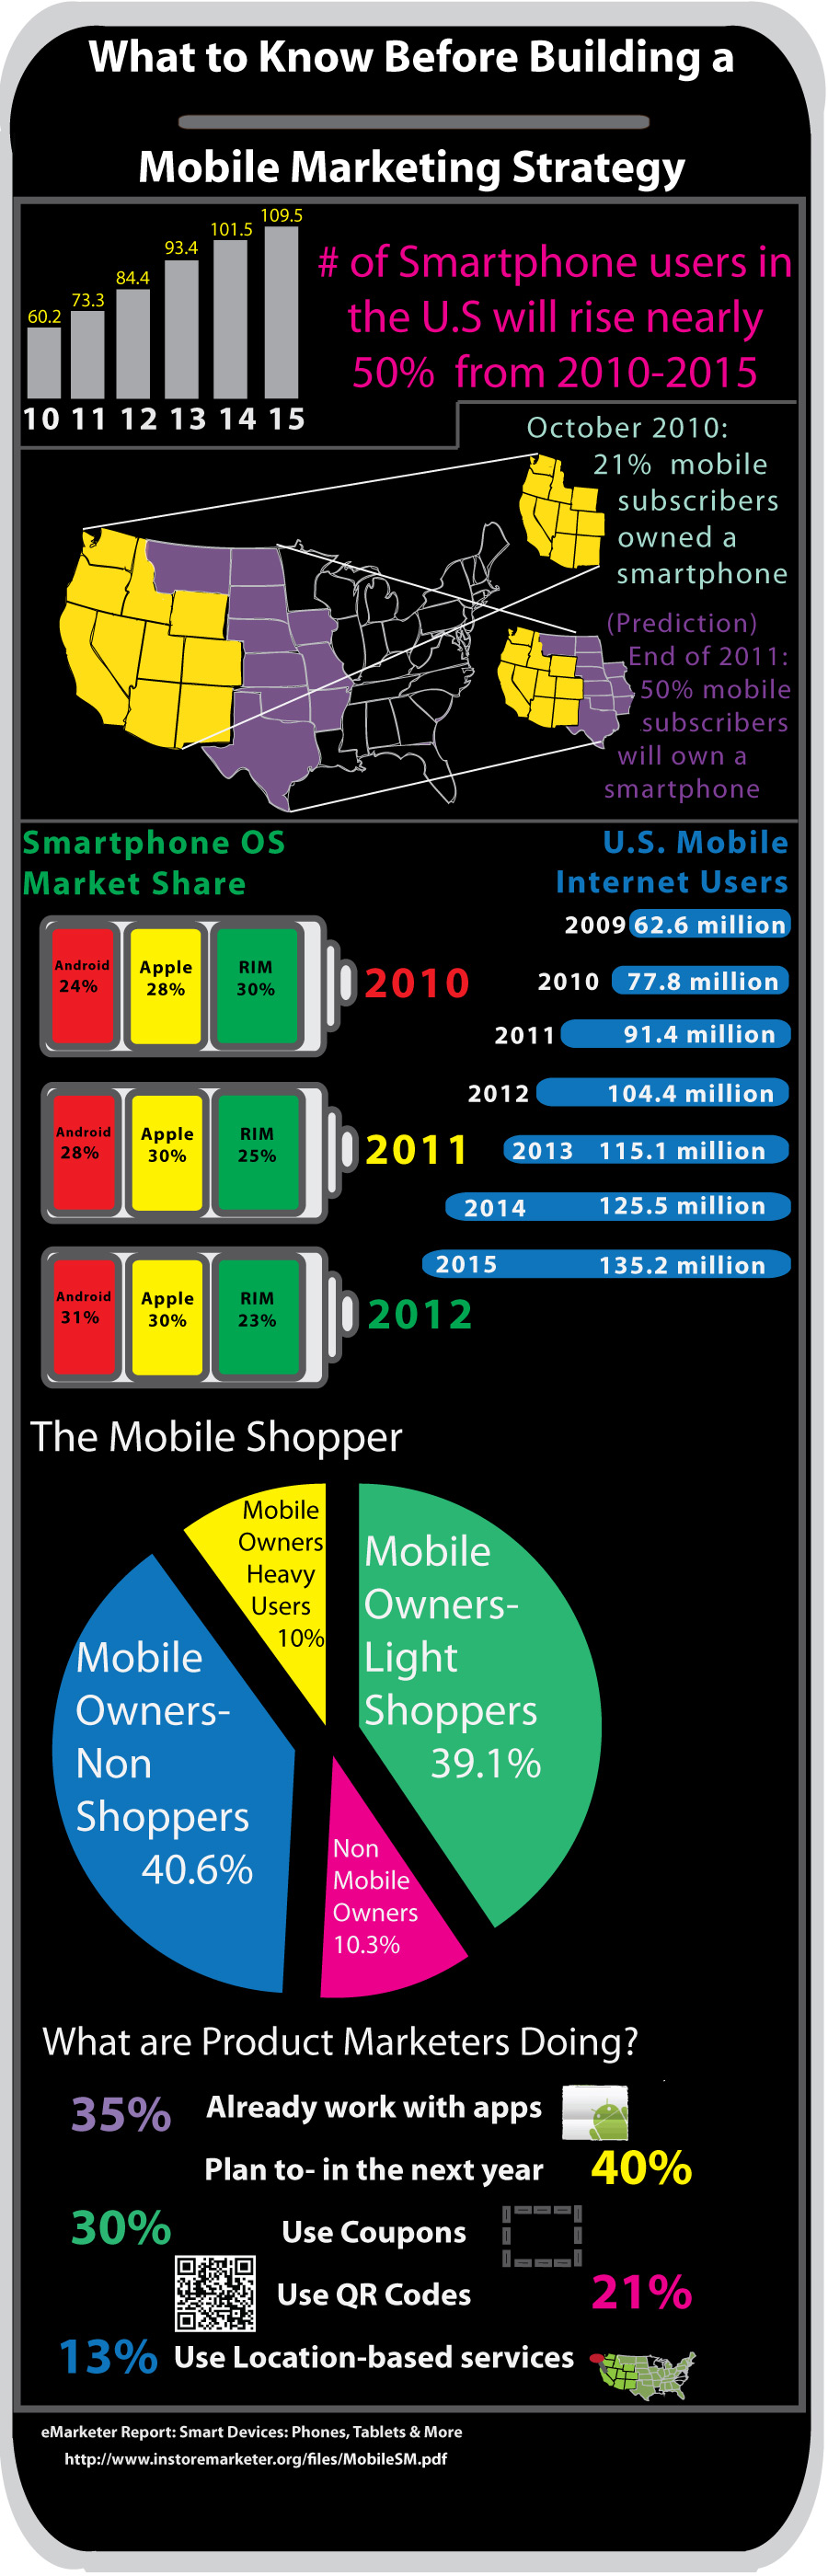 10. What to Know Before Building a Mobile Marketing Strategy